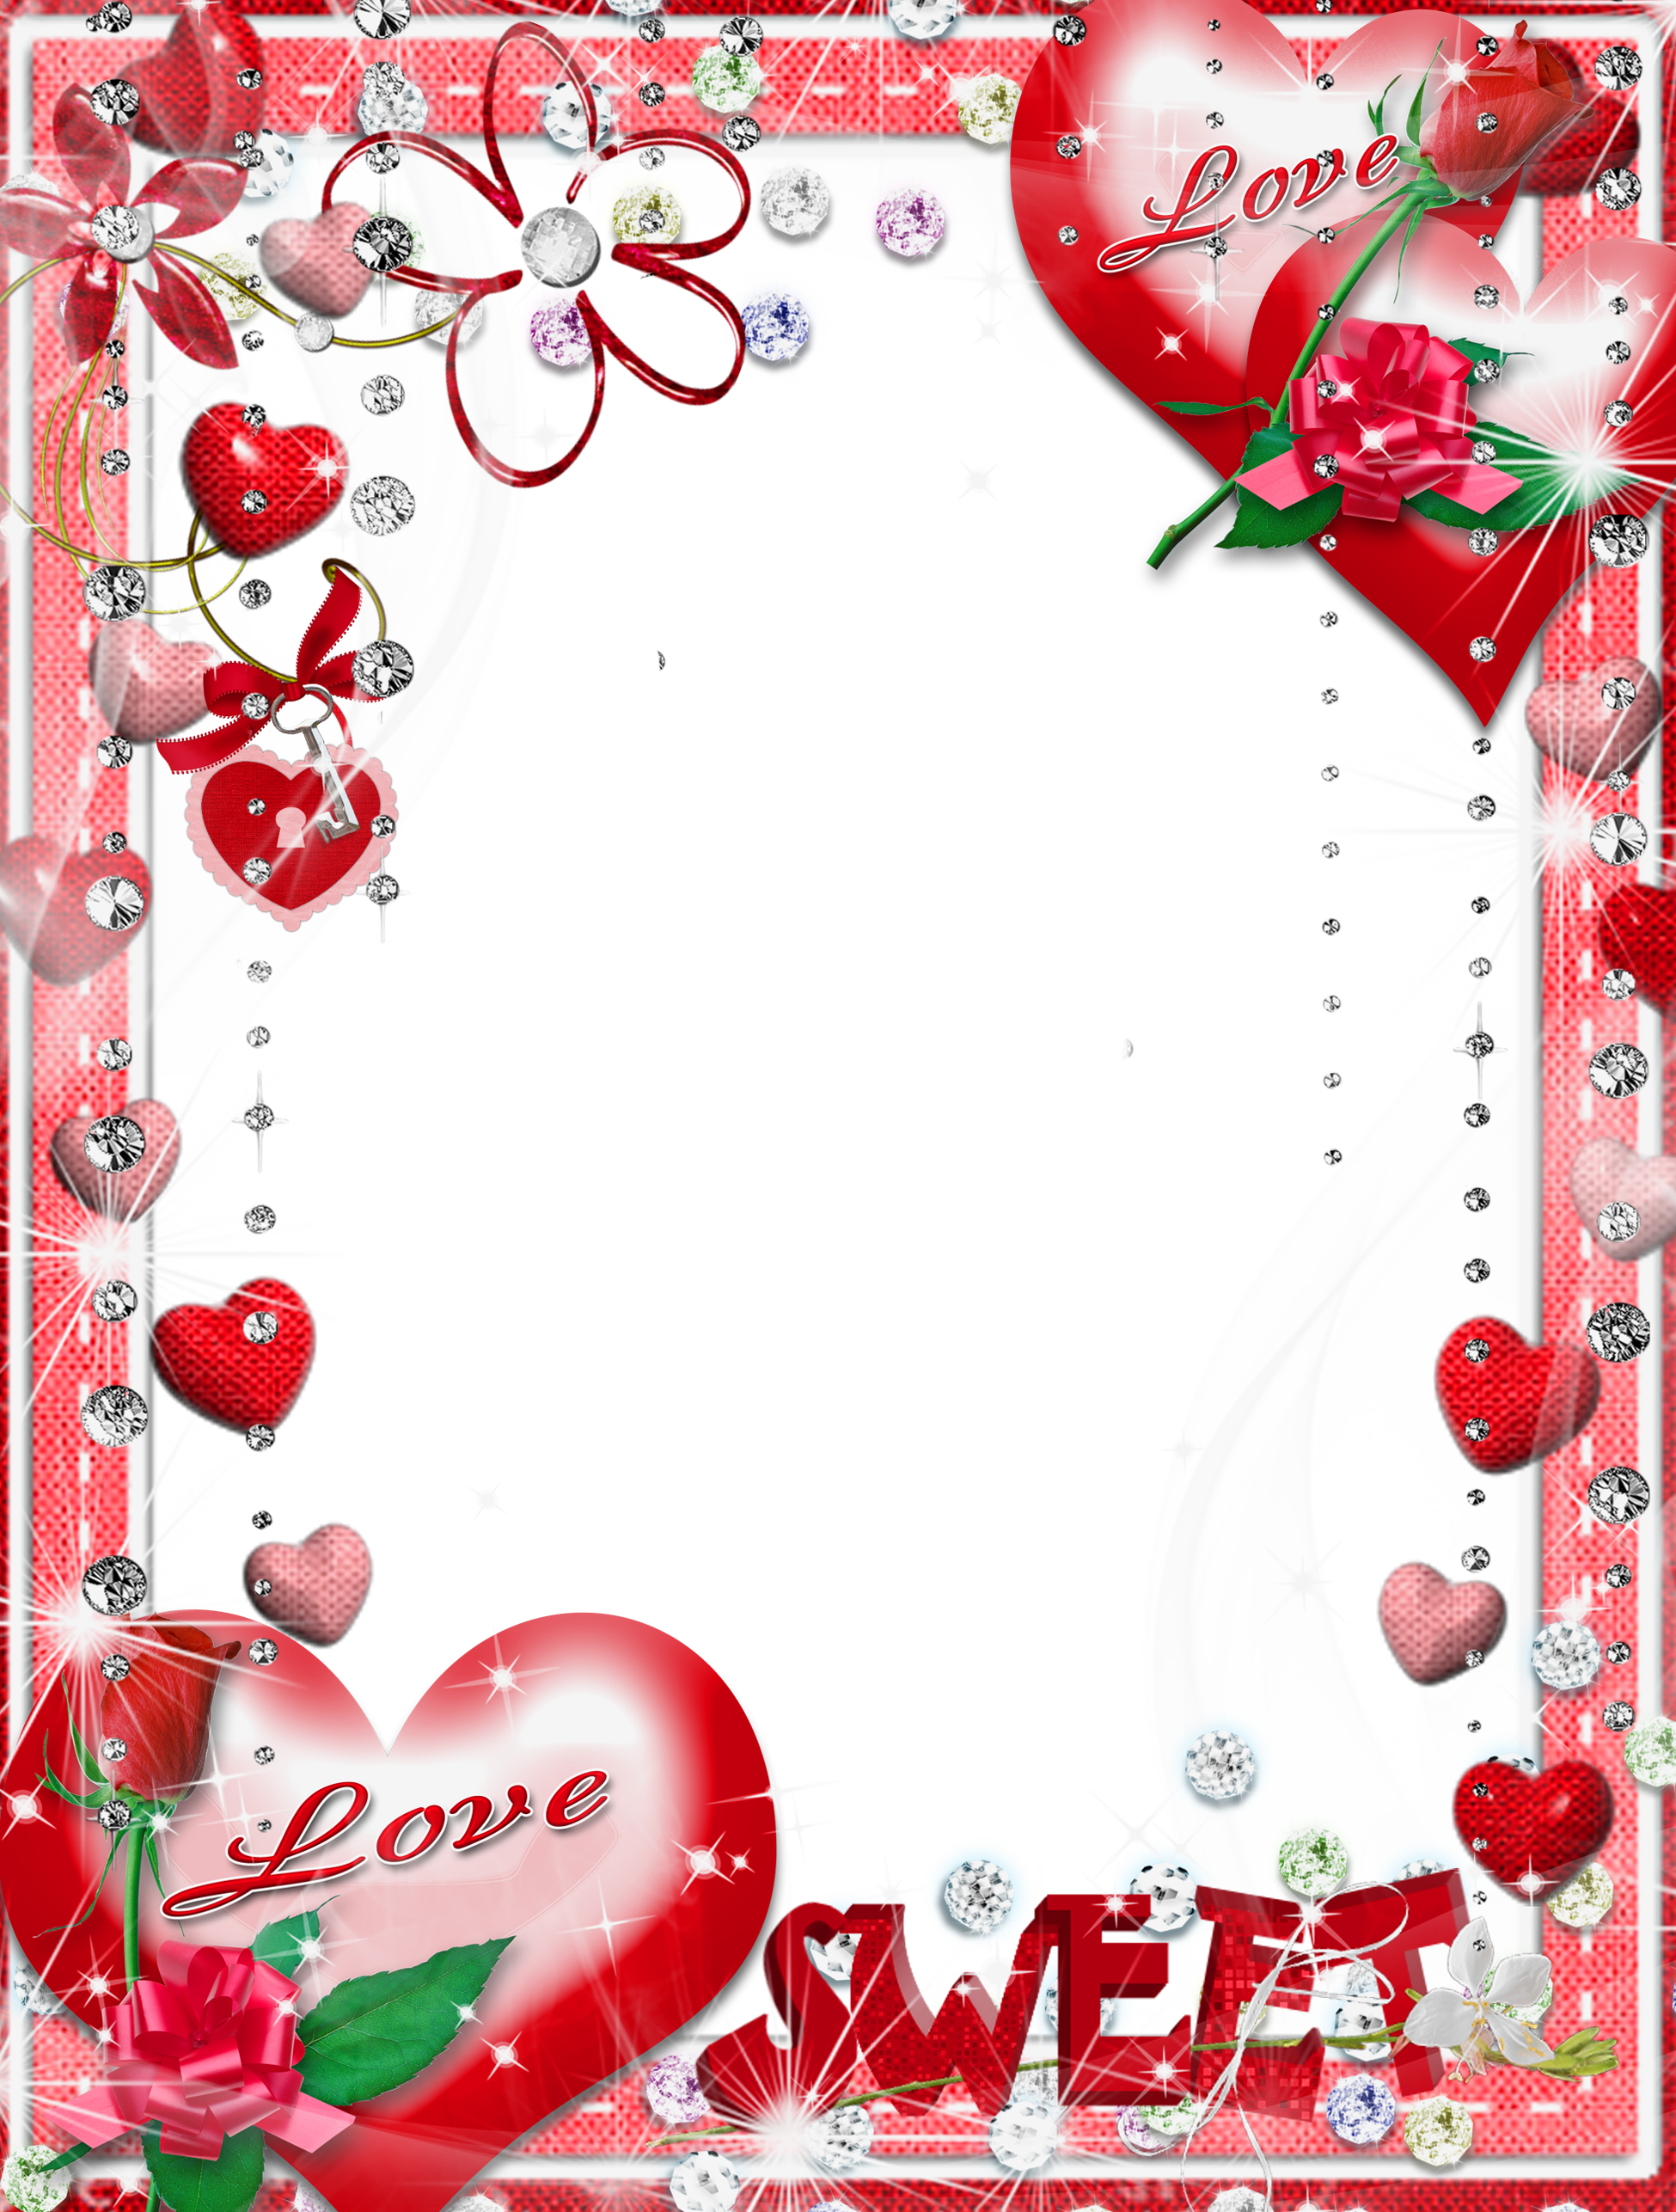 Pin by Afr0 on a | Love frames, Png photo, Wedding frames